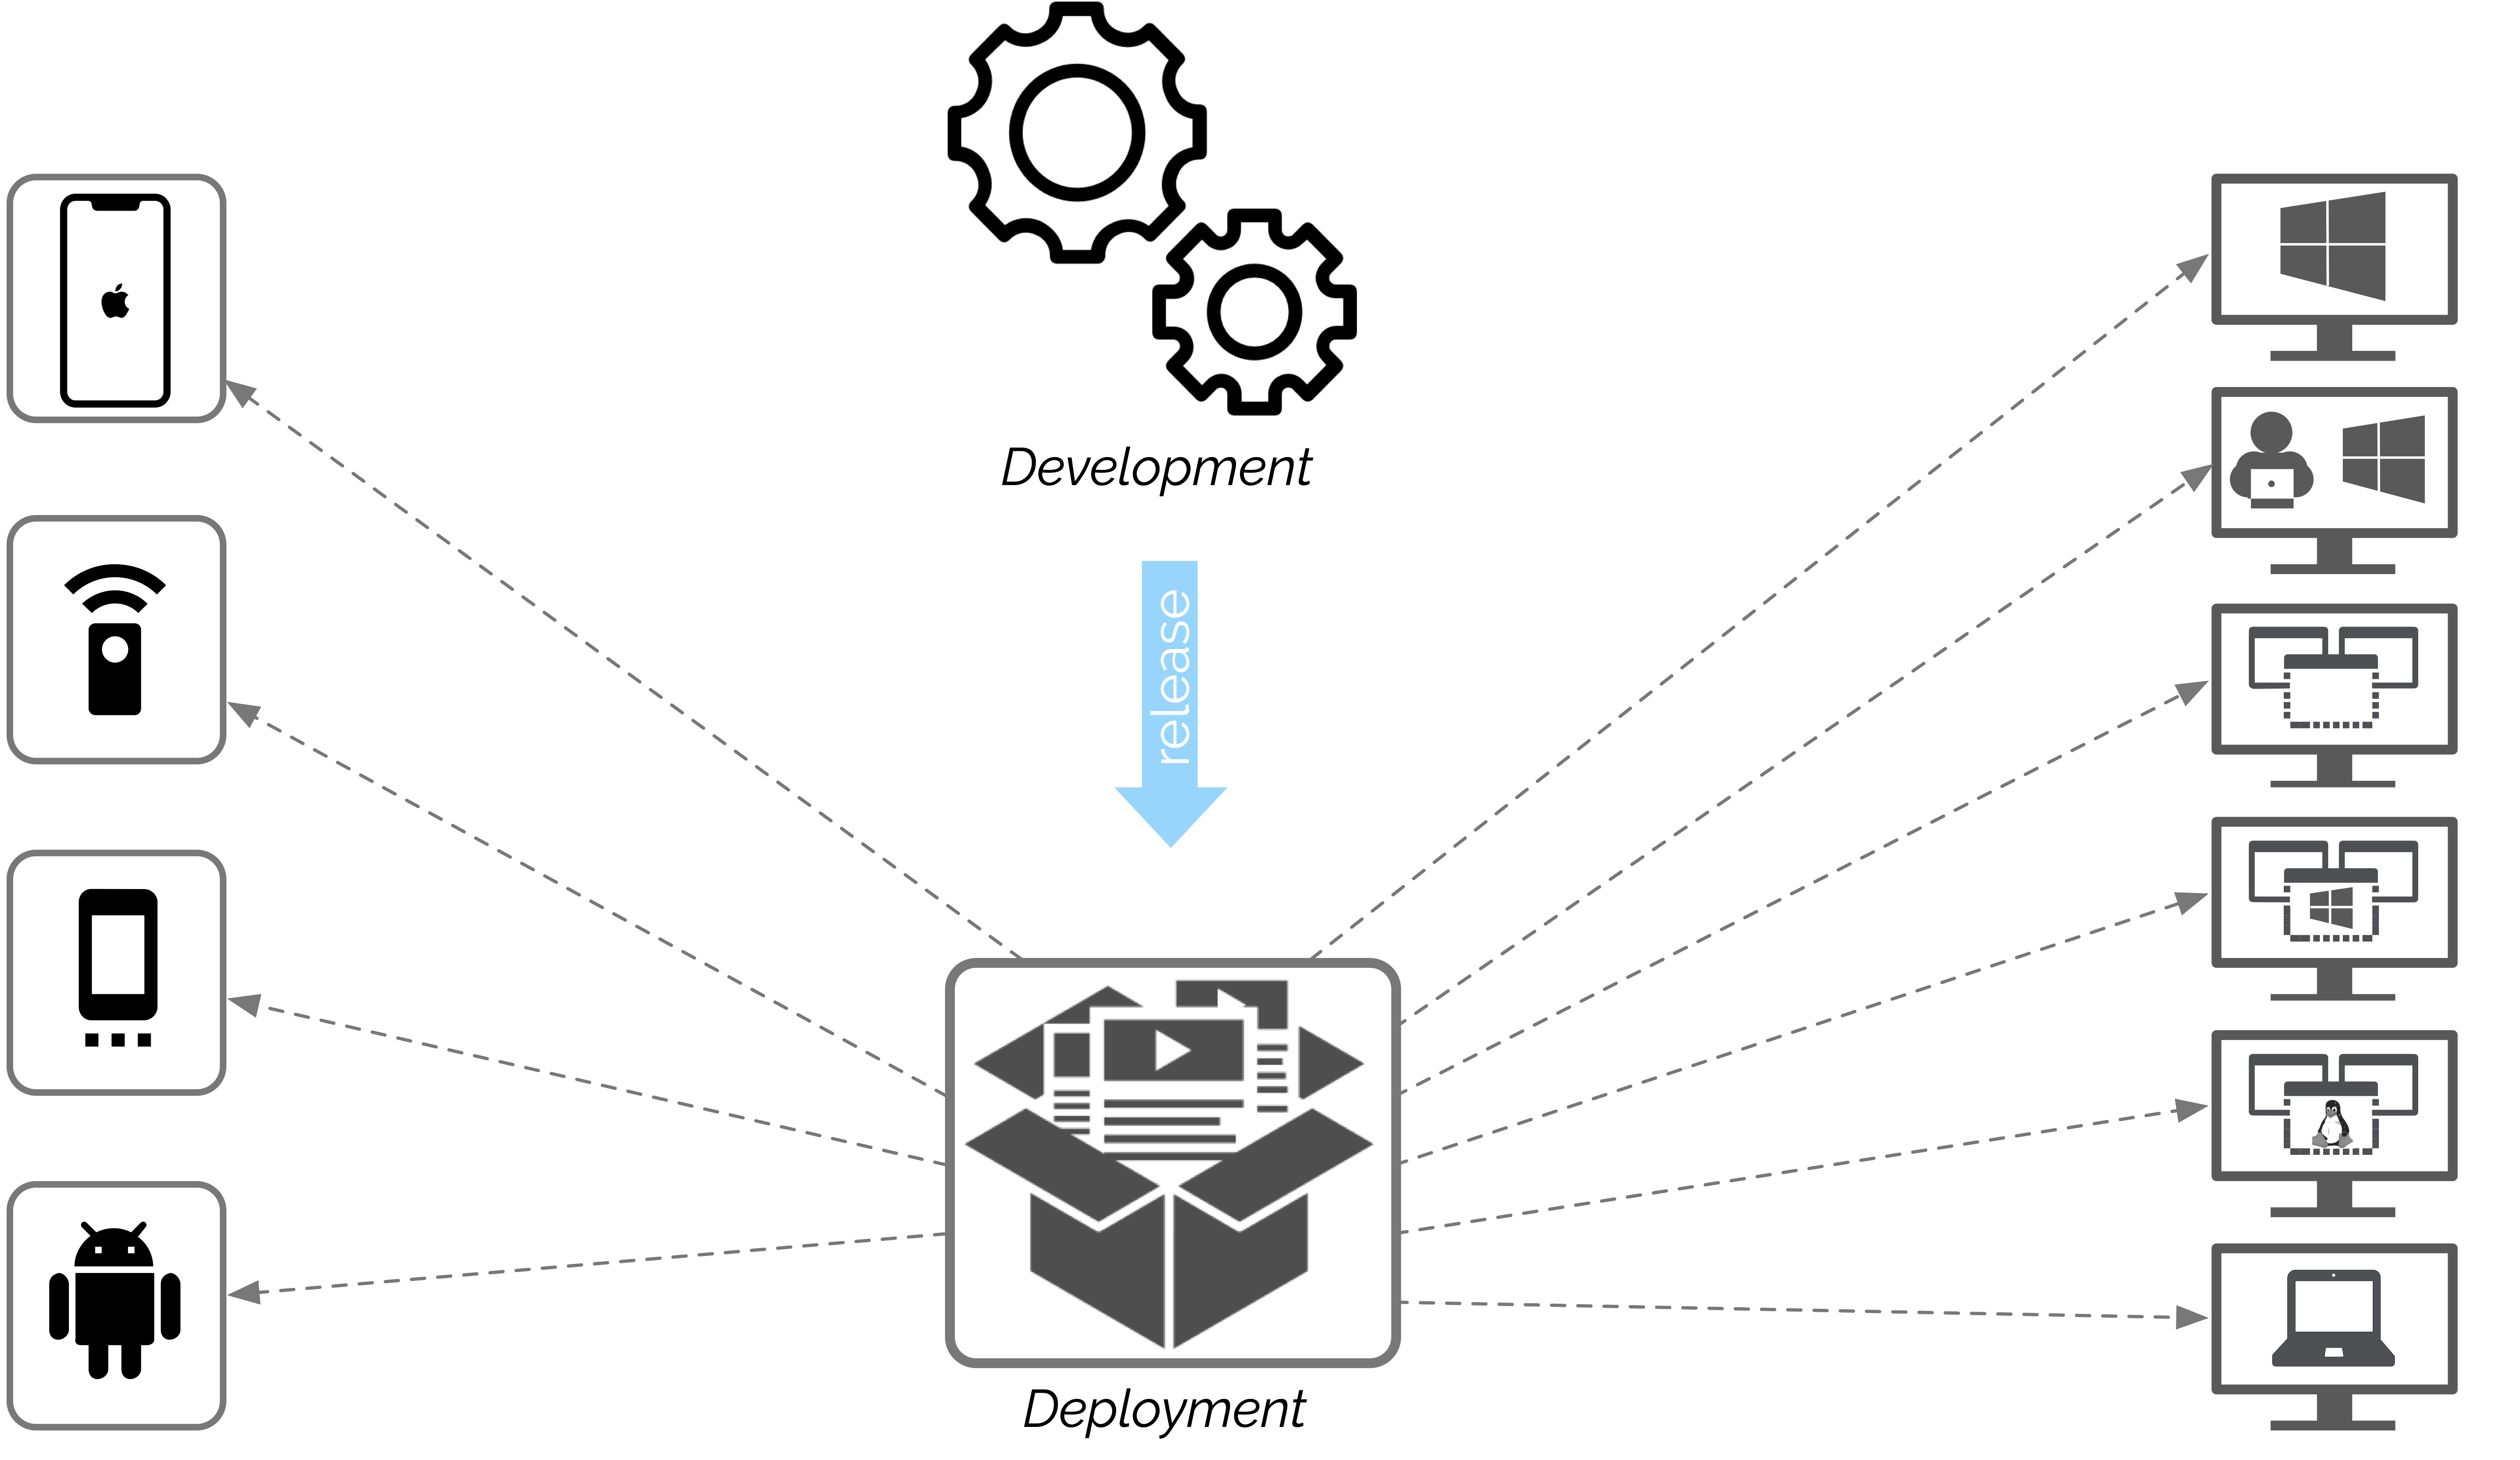 images/software-deployment.png